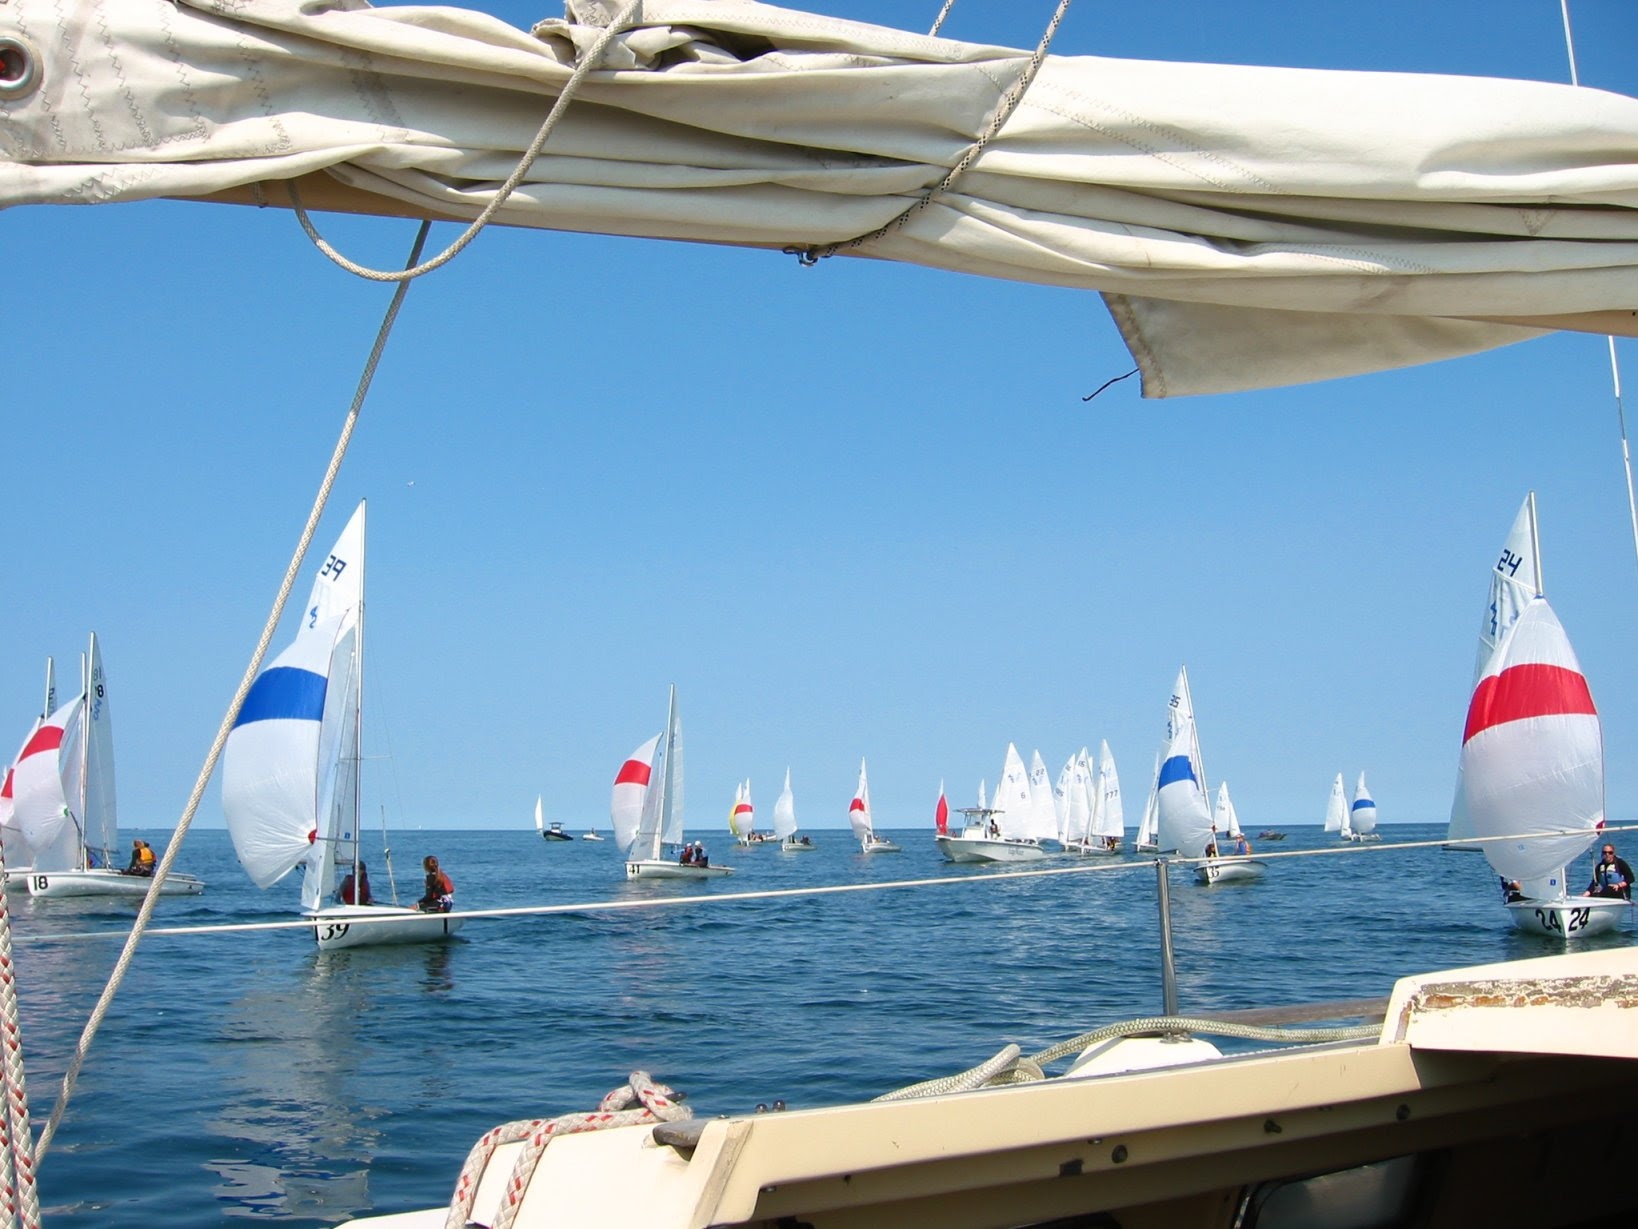 sail boats in milwaukee -- soul-amp.com